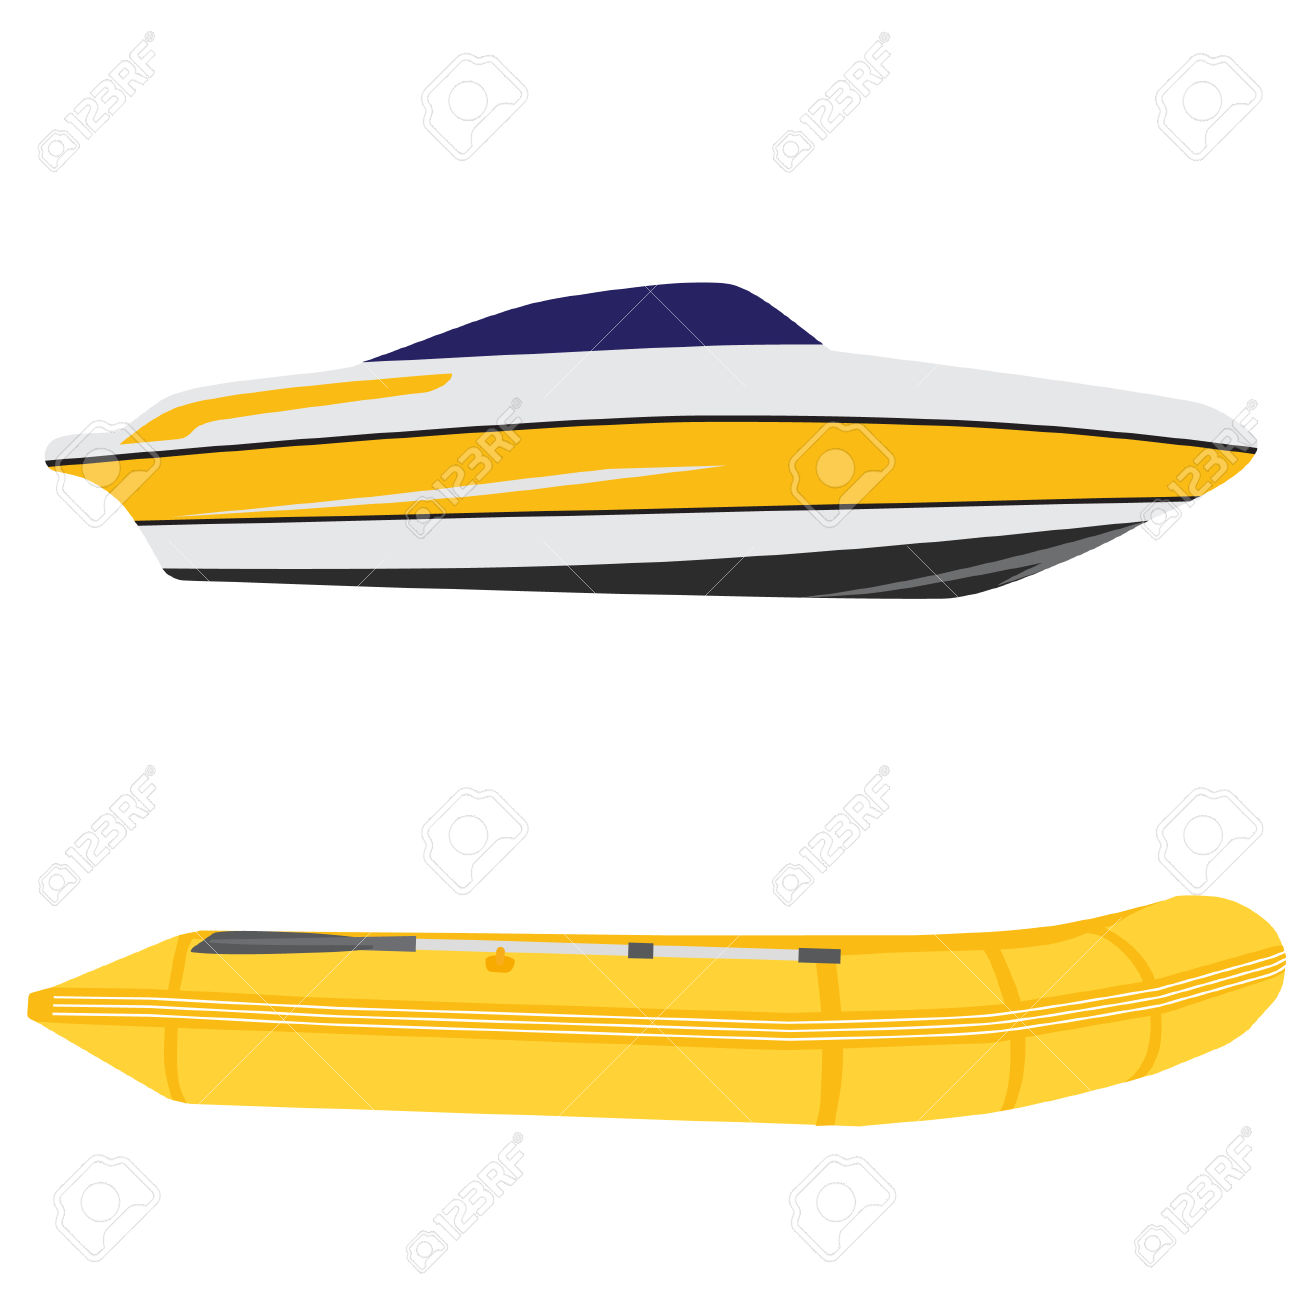 Illustration Of Luxury Yacht And Yellow Rubber Boat, Inflatable.